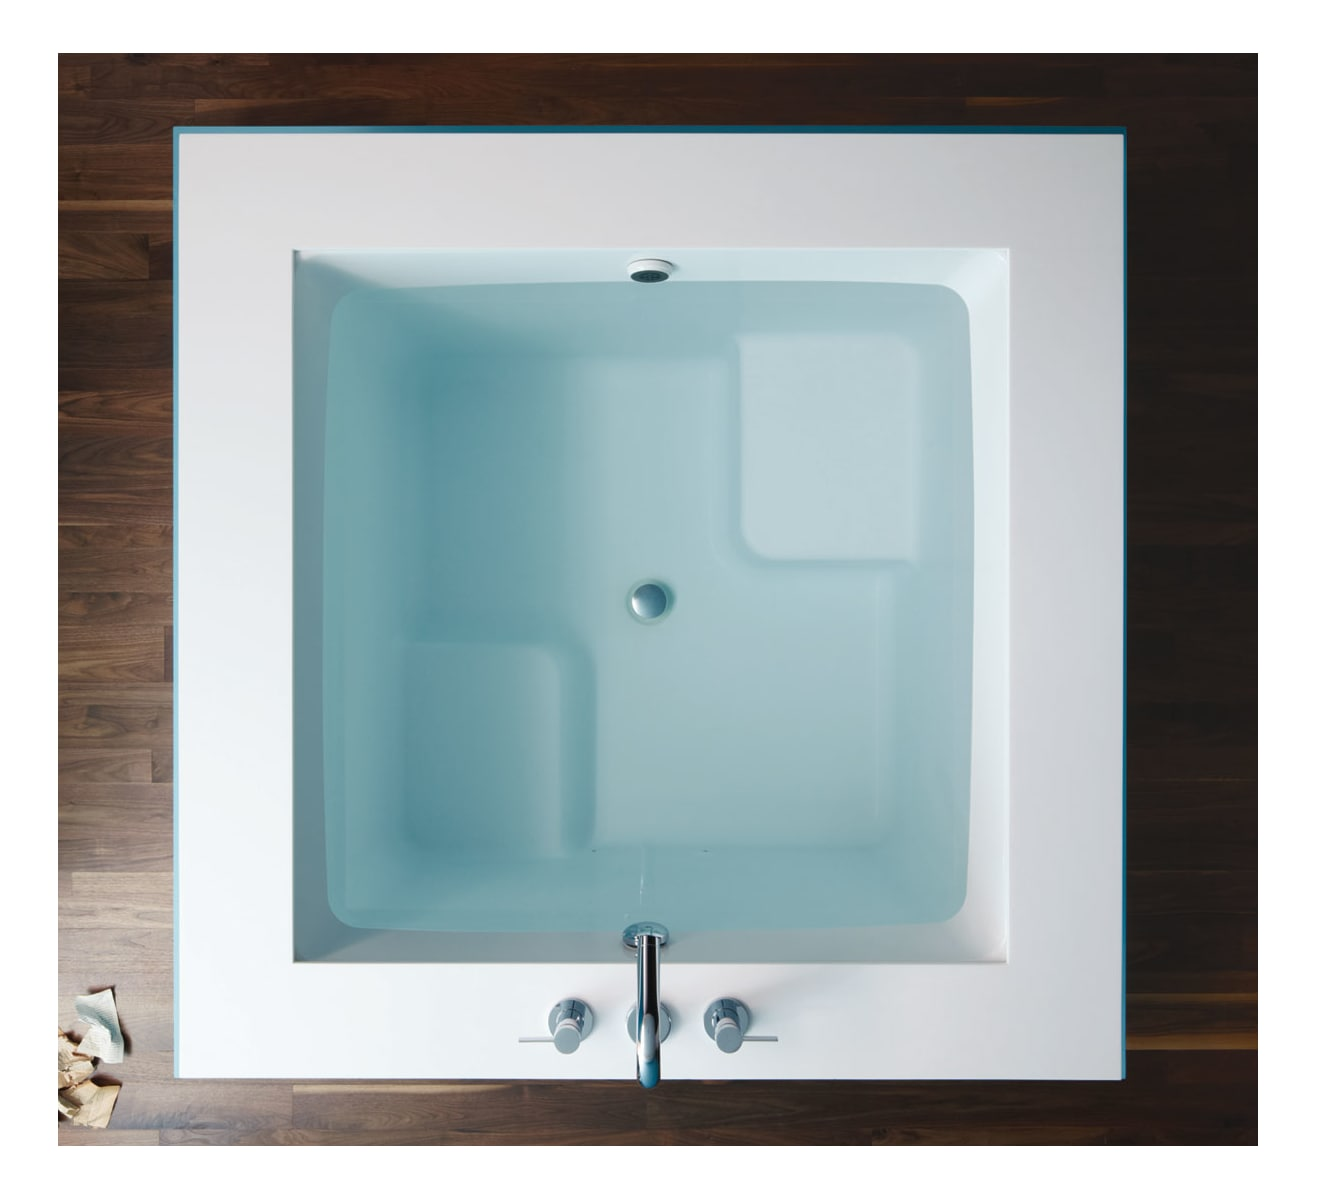 Kohler K-1968-0 White Drop In Cube Soaking Bath Tub from the ...